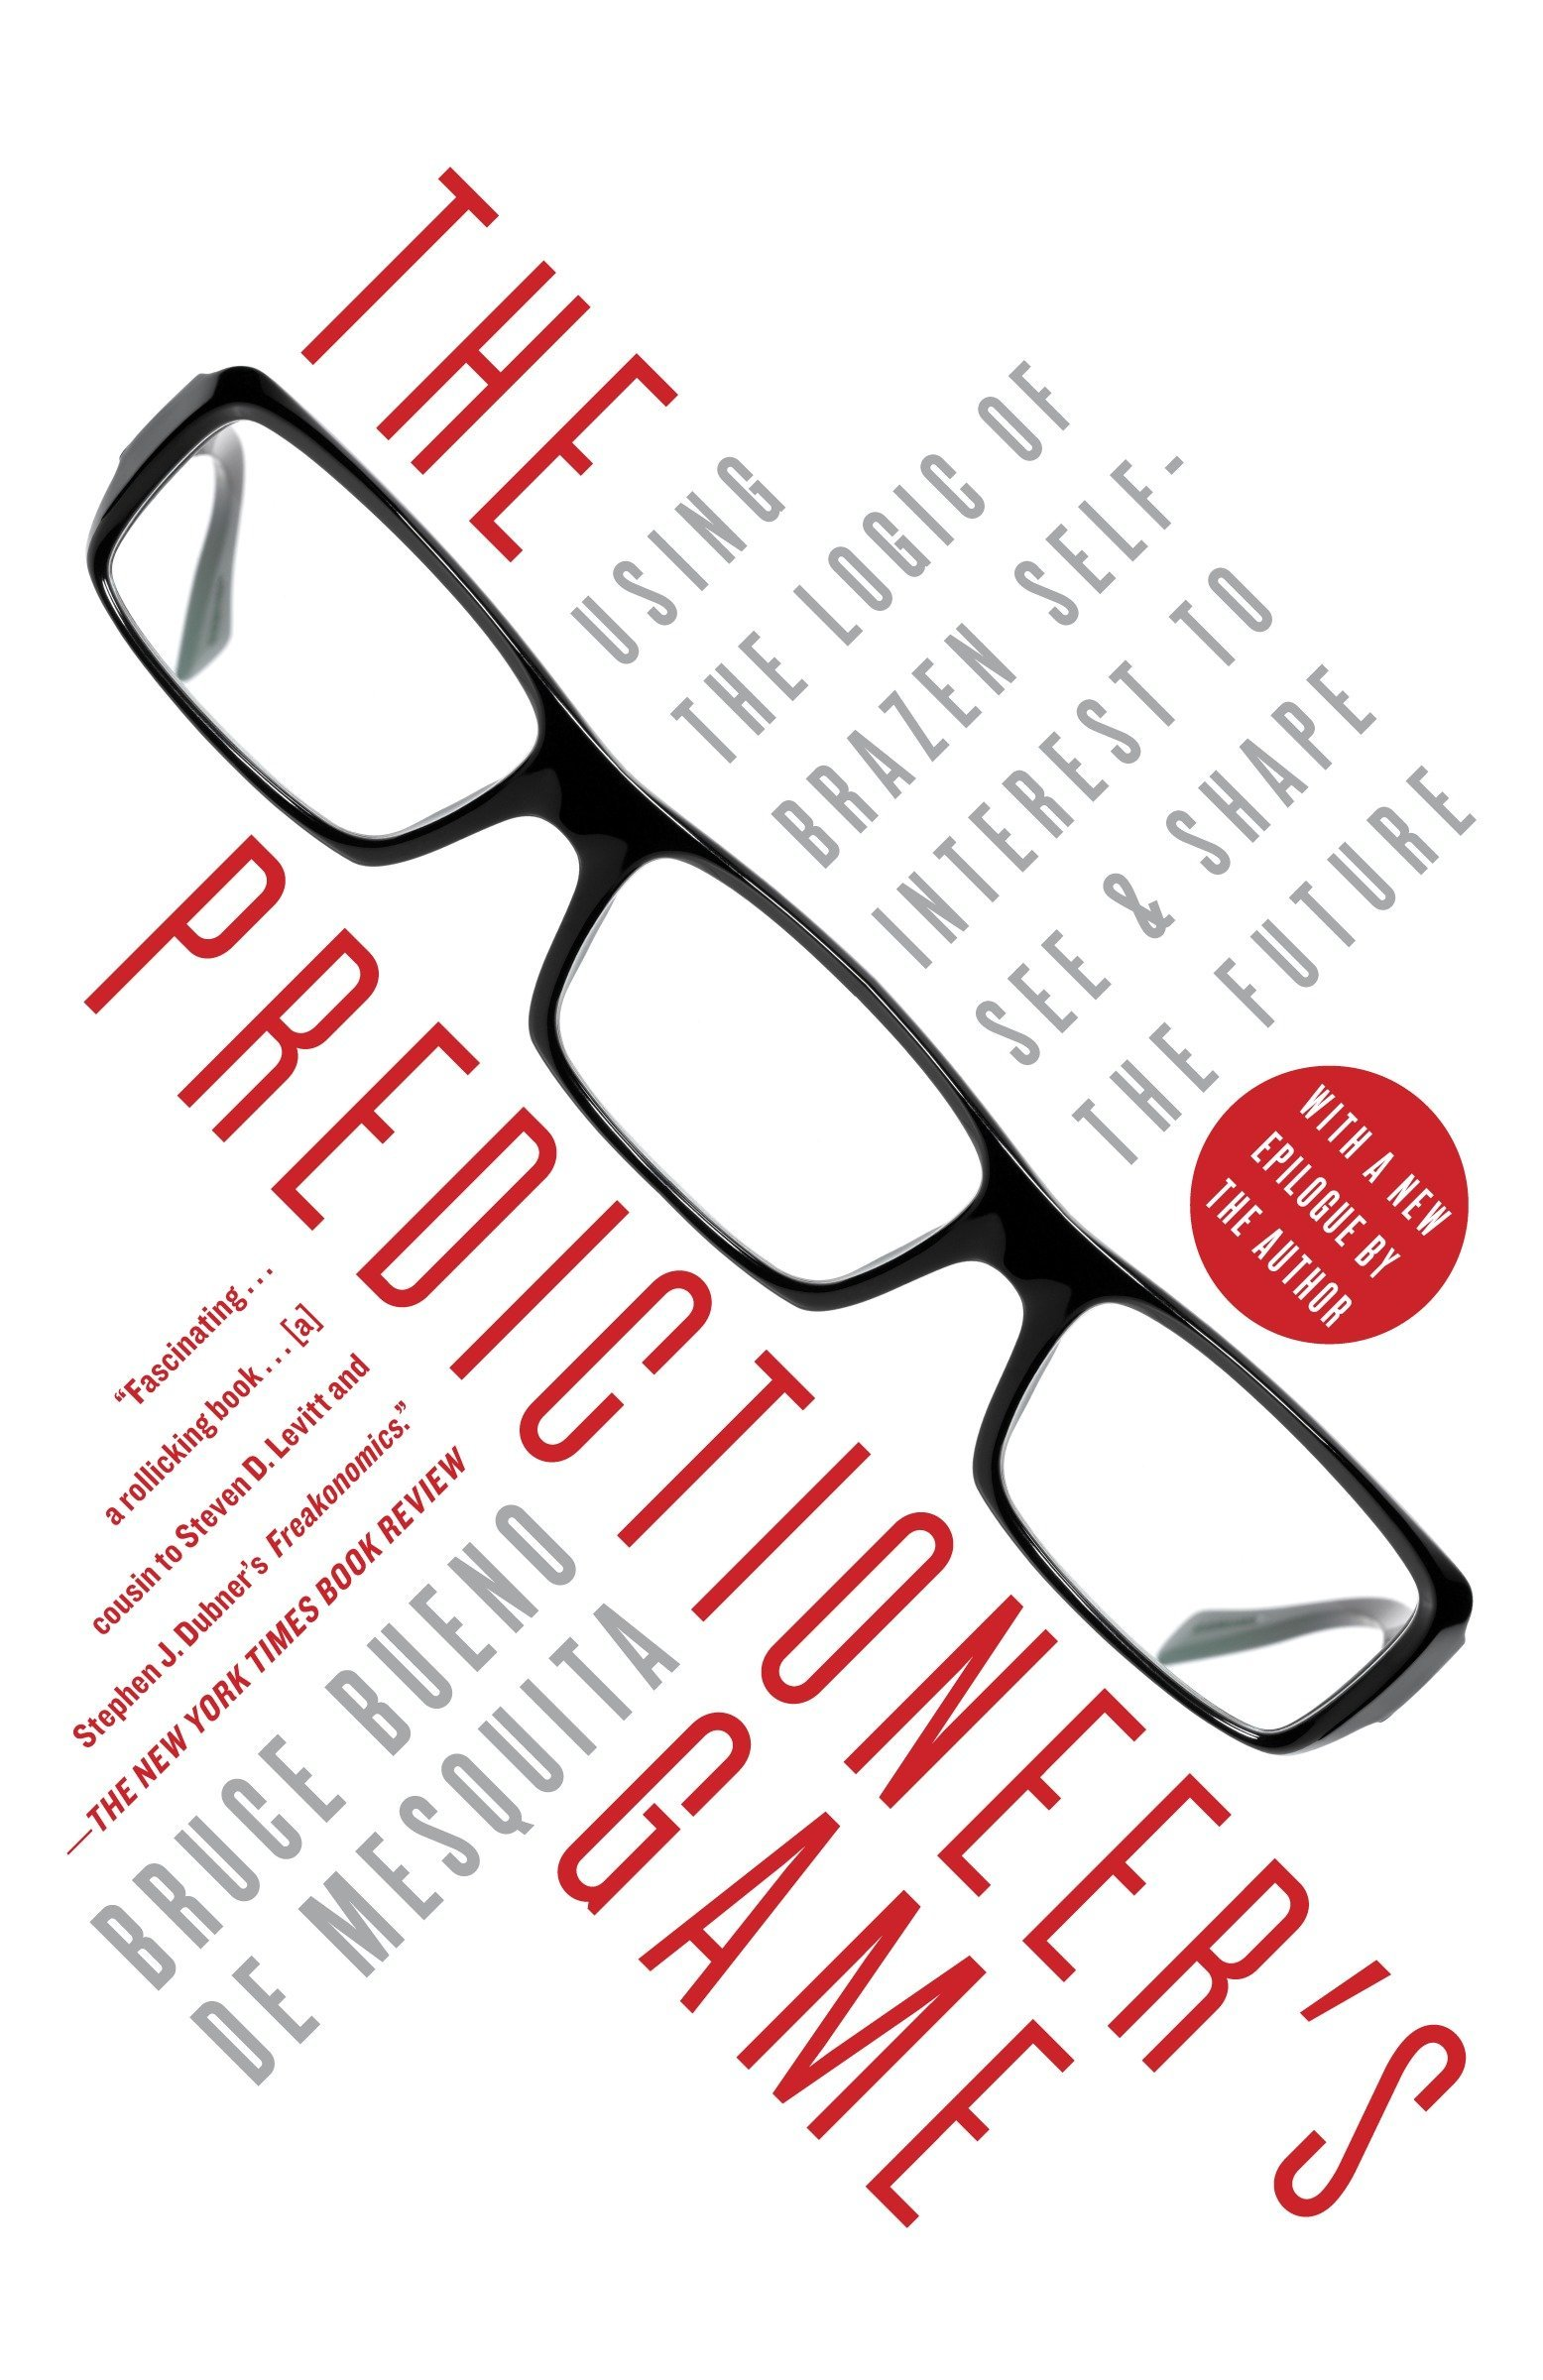 THE PREDICTIONEERS GAME EBOOK DOWNLOAD